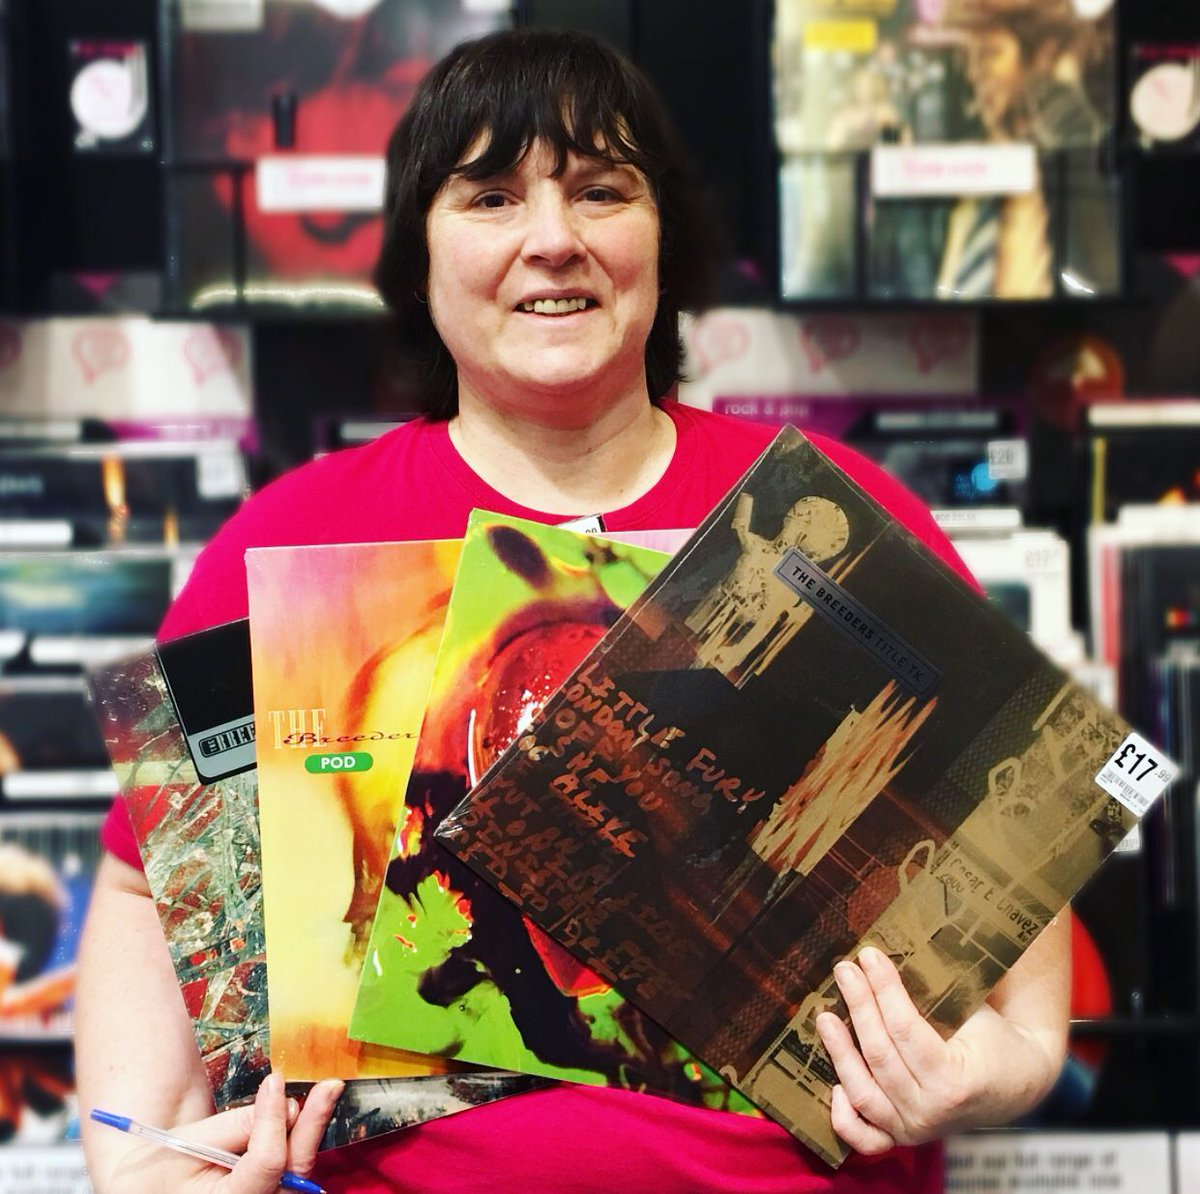 Rach's vinyl recommends this week are The Breeders reissues. Awesome Indie Rock straight outta Dayton, Ohio. Buy all 4 for £69.99 saving £10.97, or £17.99 each! #hmvLovesVinyl  #thebreeders #vinyl #vinylcollector